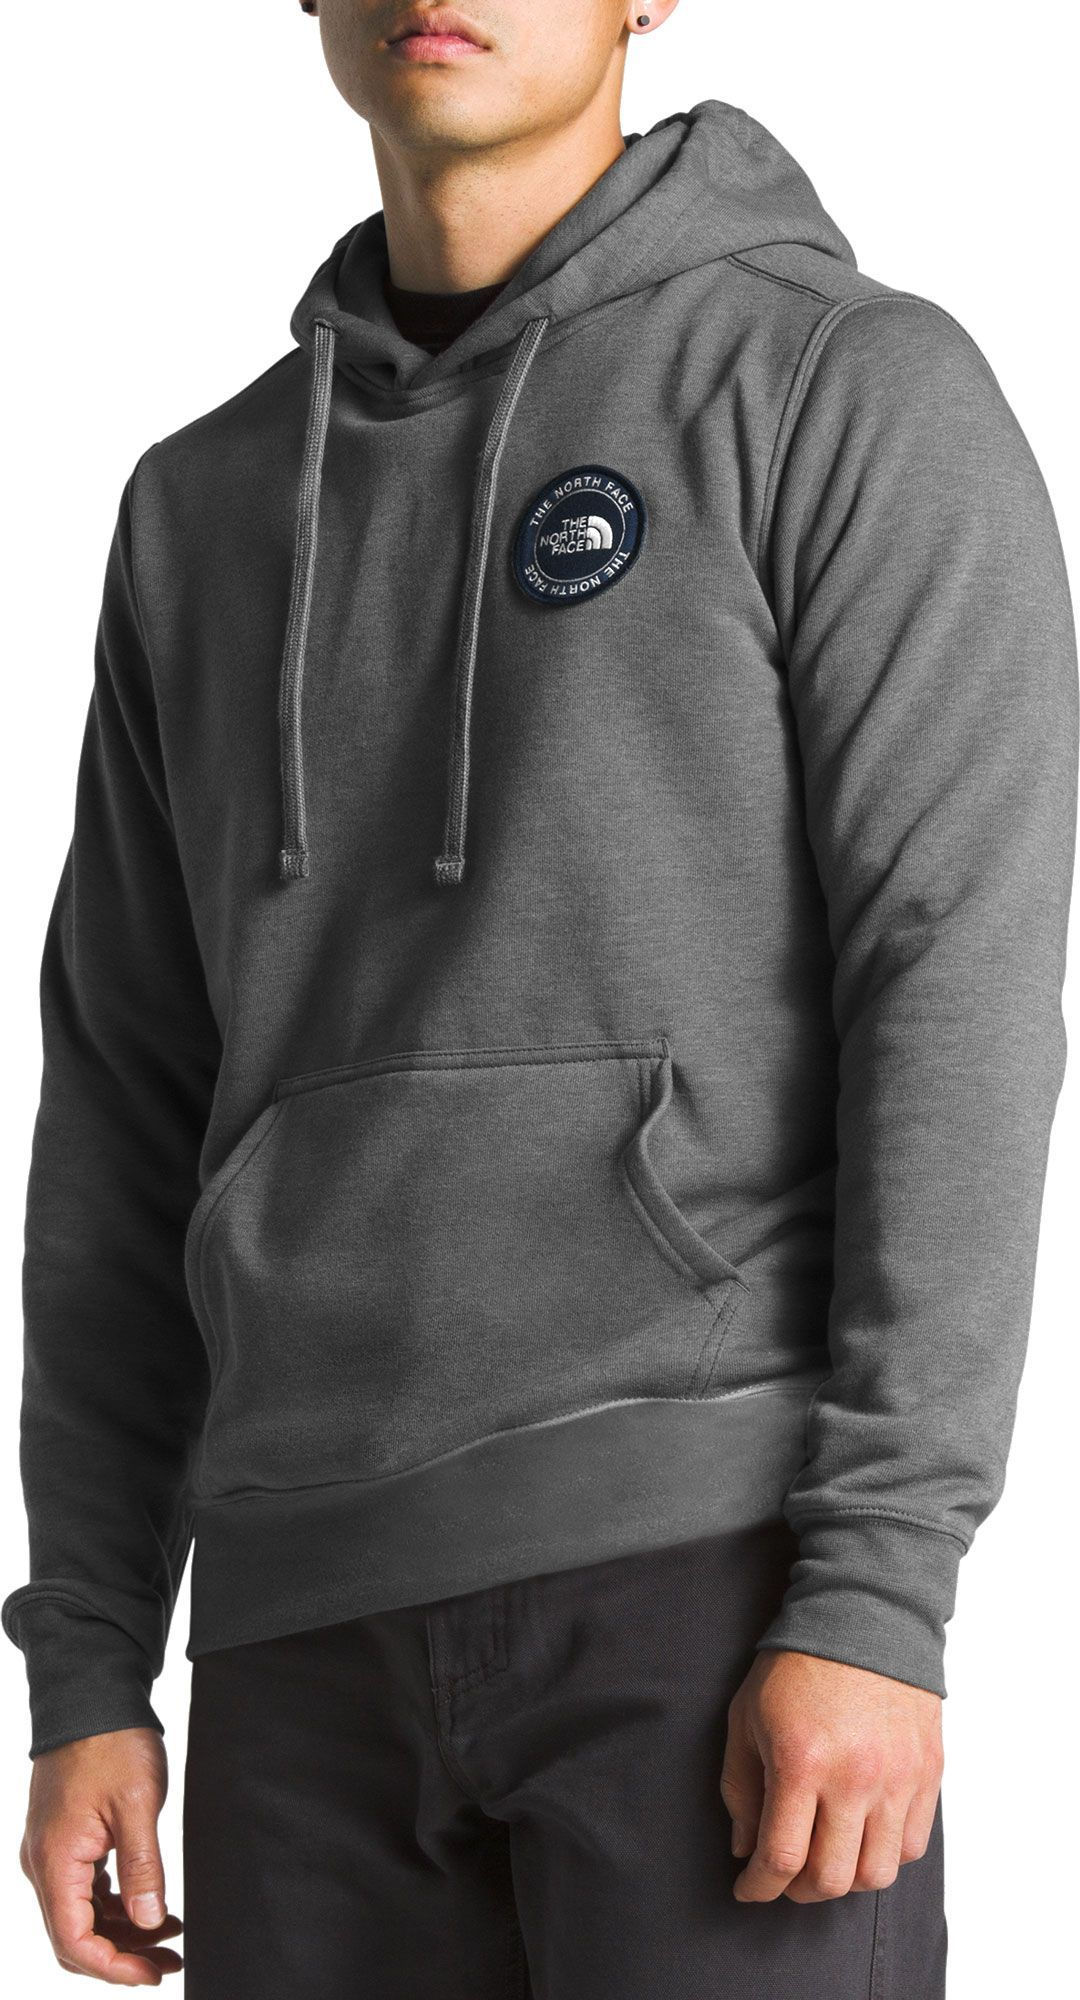 bb9d52317 The North Face Men's Graphic Patch Pullover Hoodie, Size: Medium ...